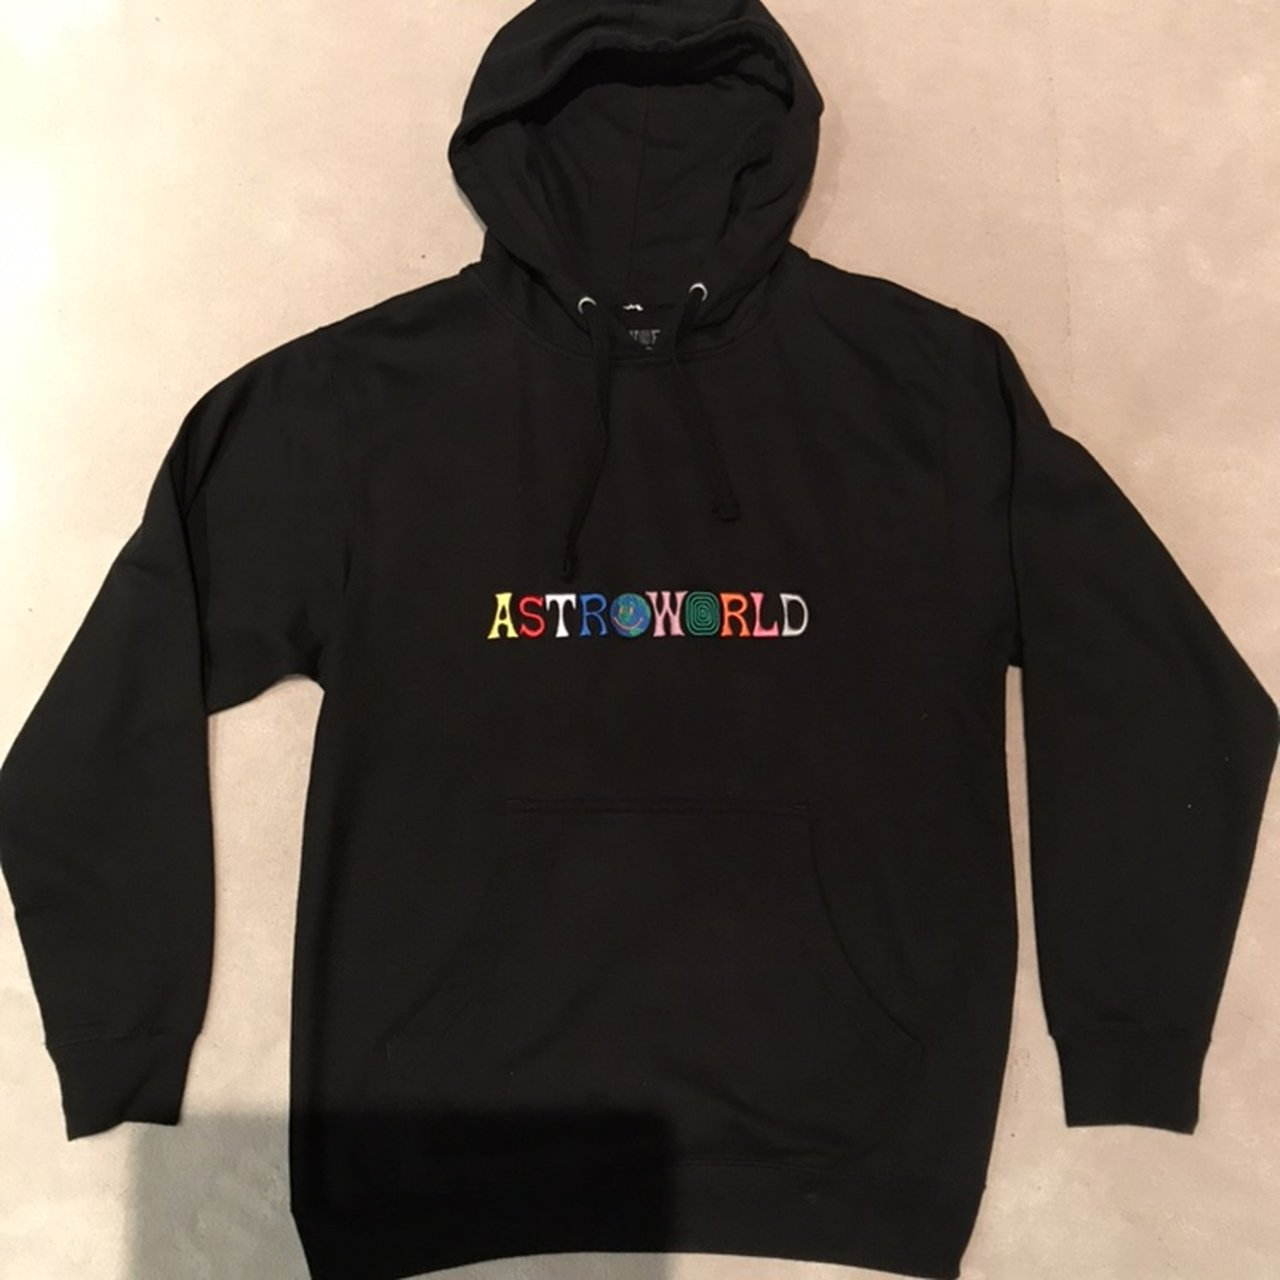 d268135e7cfc Astroworld embroided logo hoodie Bought from official Travis - Depop